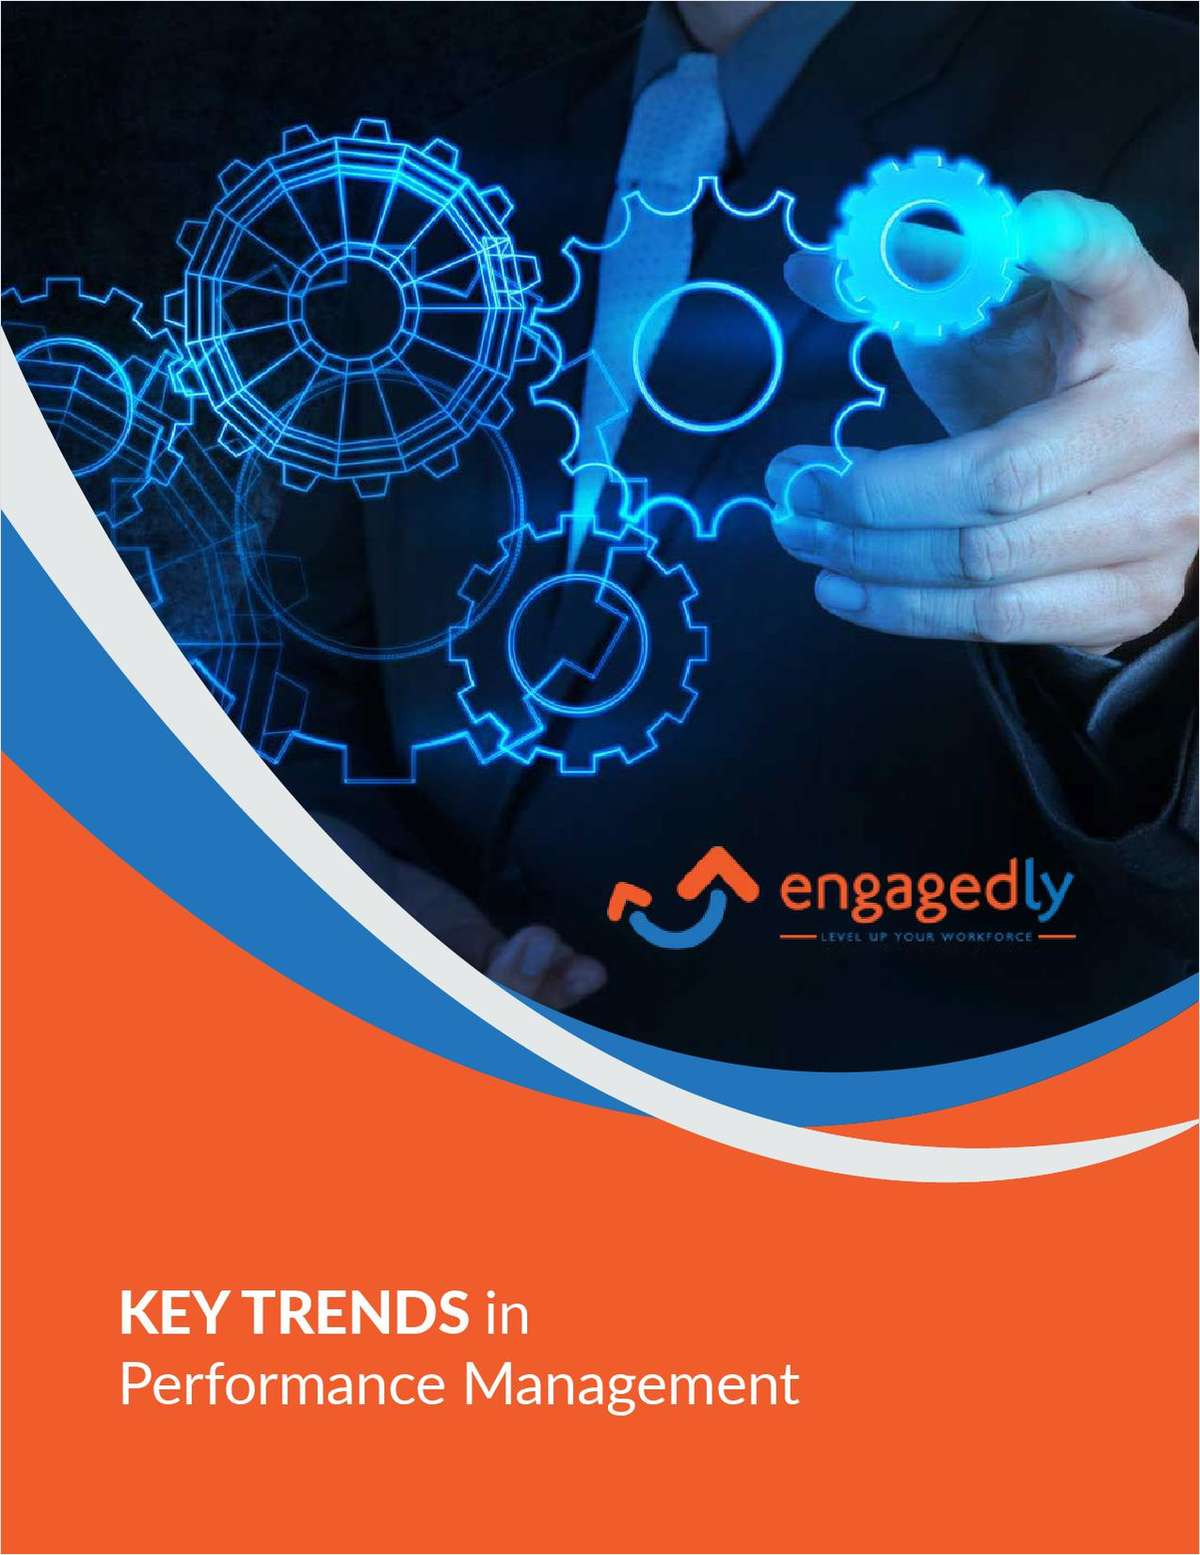 Trends in Performance Management